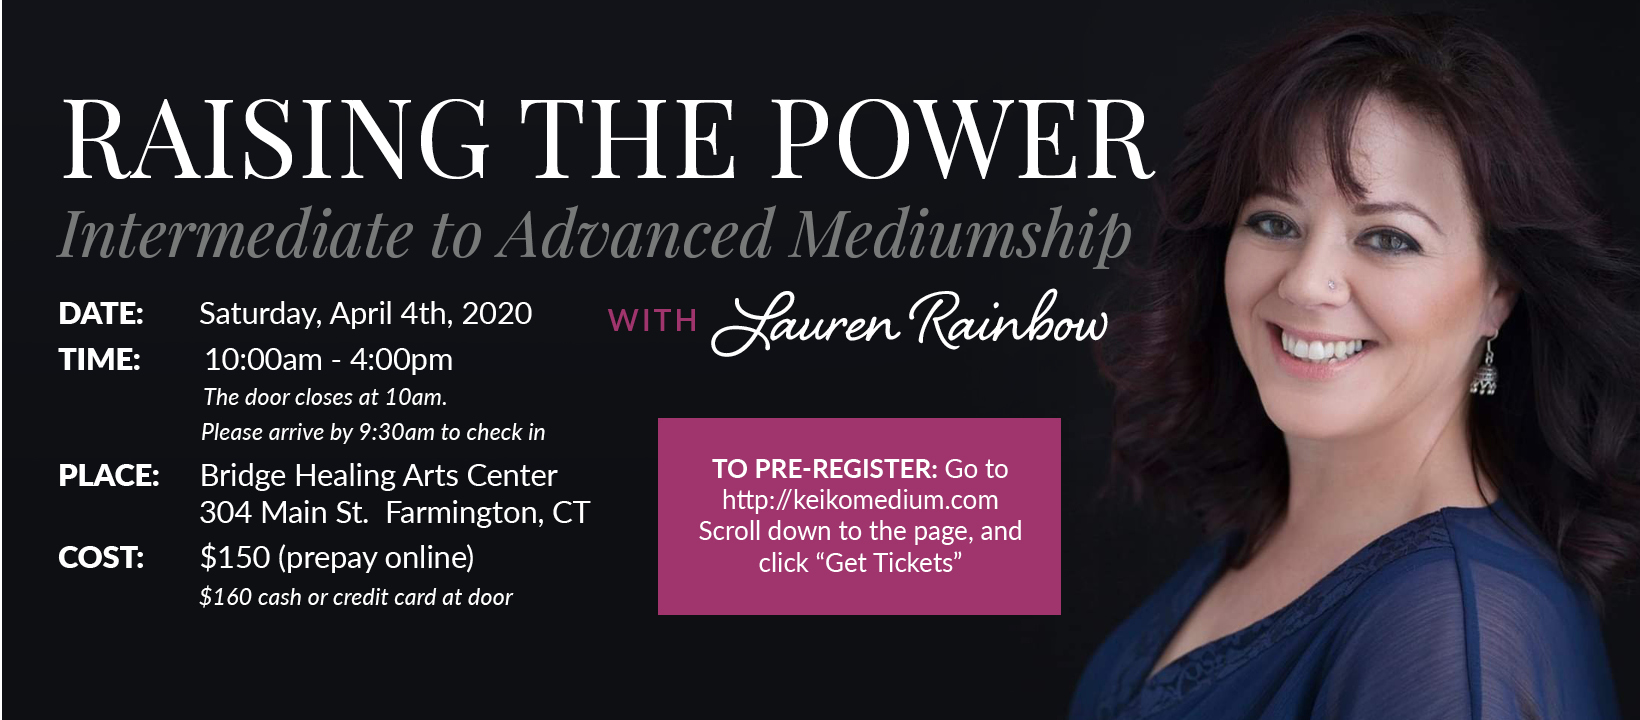 Raising The Power - Intermediate to Advanced Mediumship Workshop